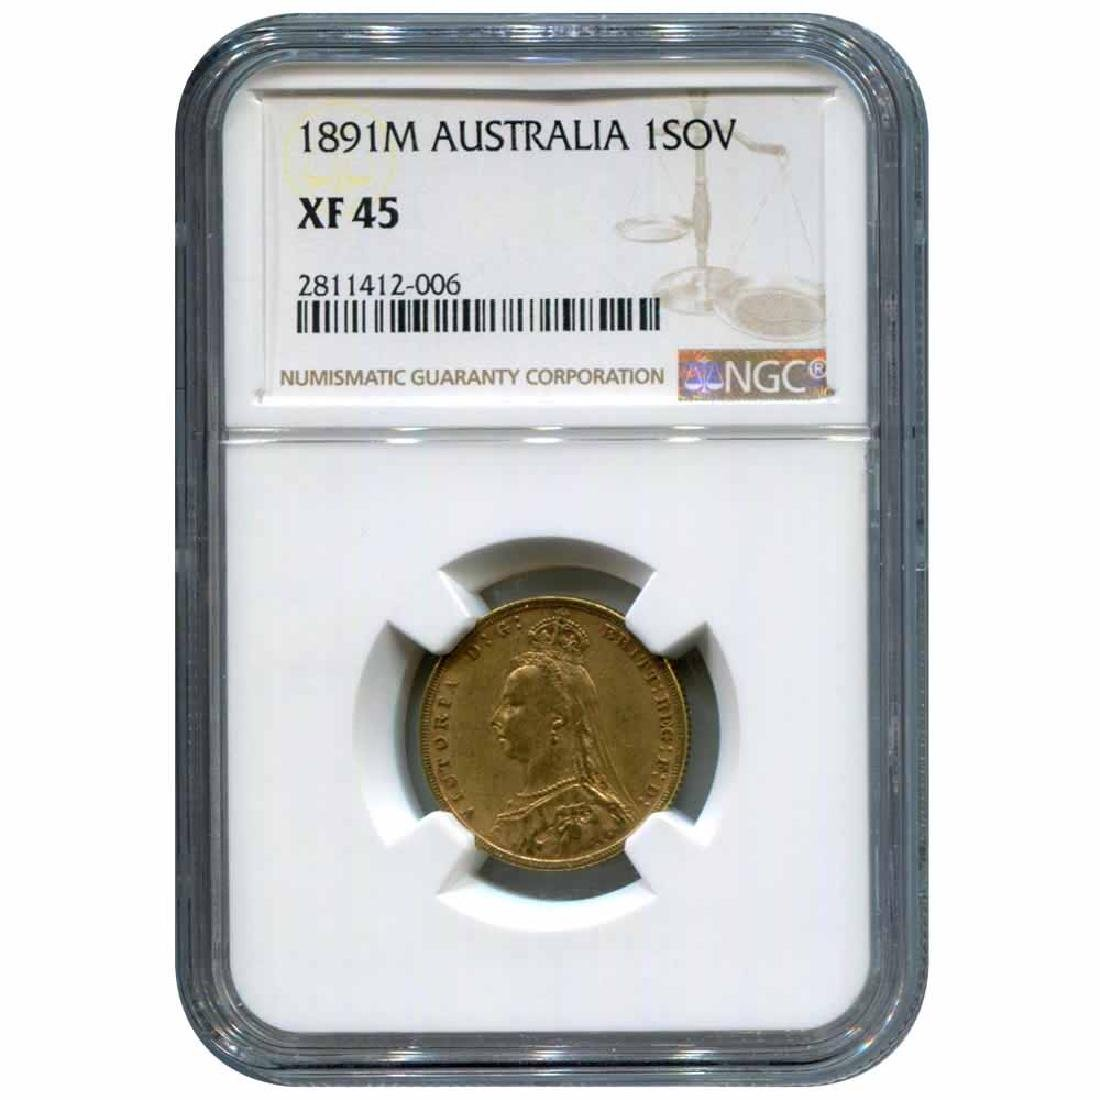 Australia gold sovereign 1891M XF45 NGC